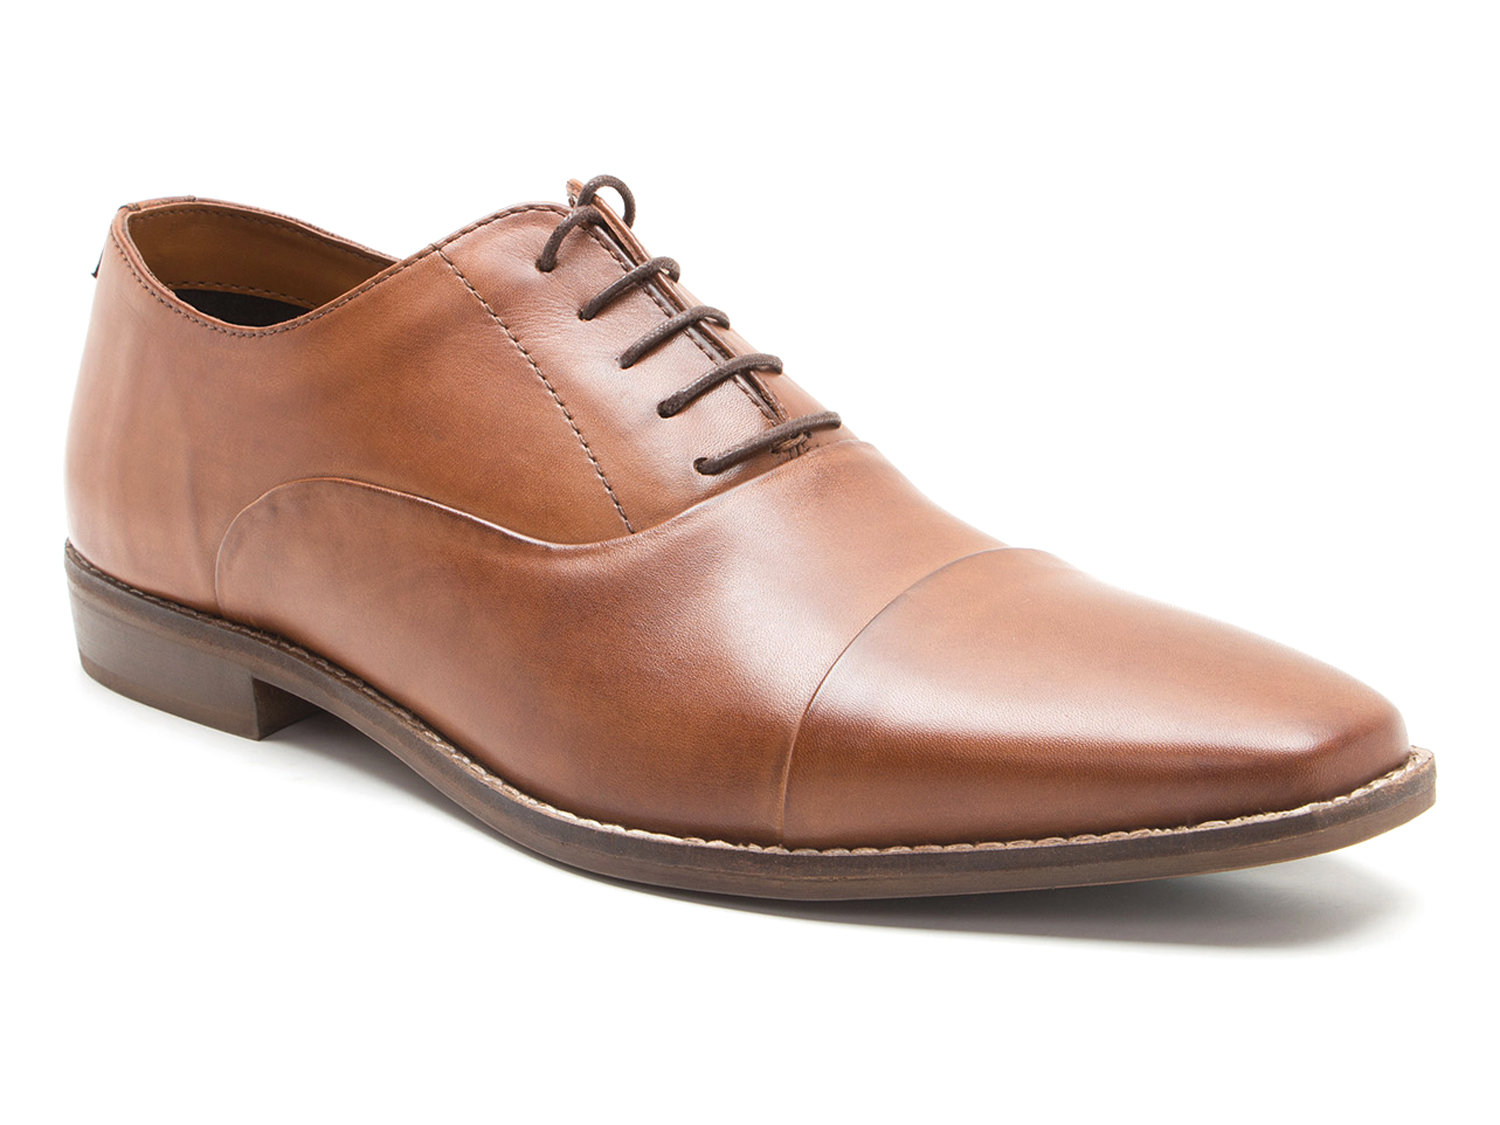 156ded27c44 This is a fantastic pair of formal shoes from Red Tape. They are made from  the finest cow leather and have a lovely soft feel to them.